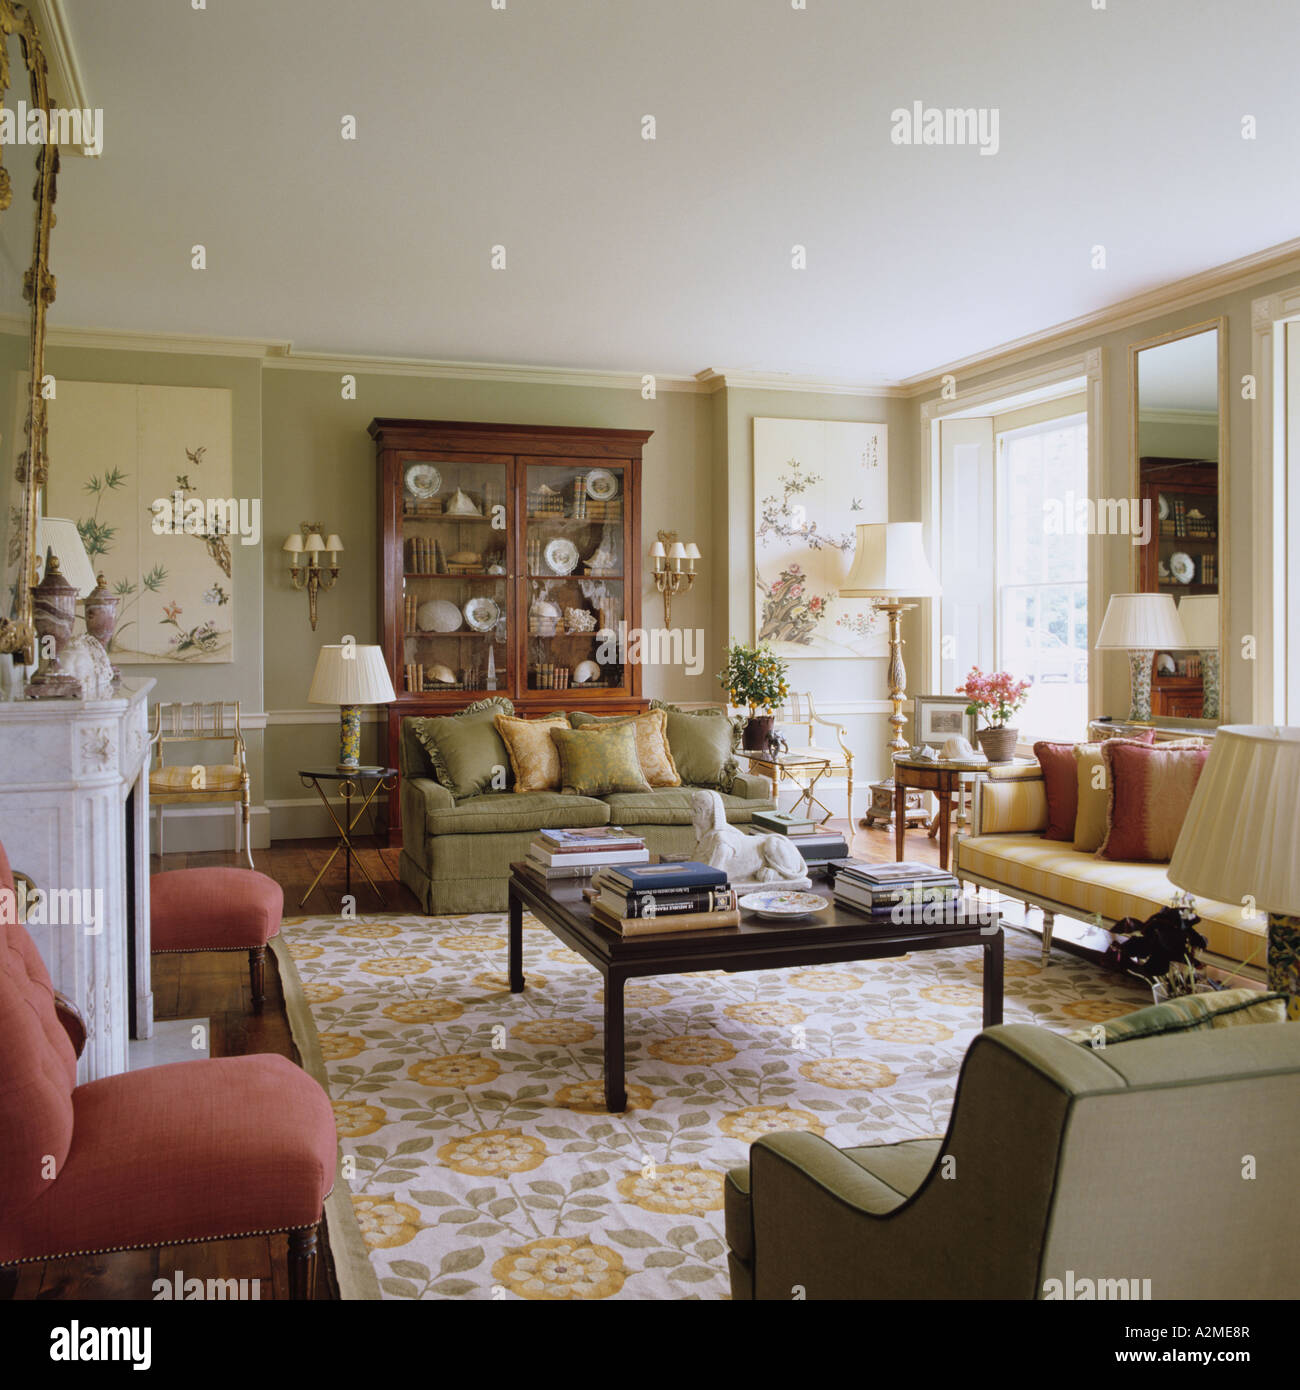 Living Room Country Living Room Of English Country House Dating From 1820s Stock Photo